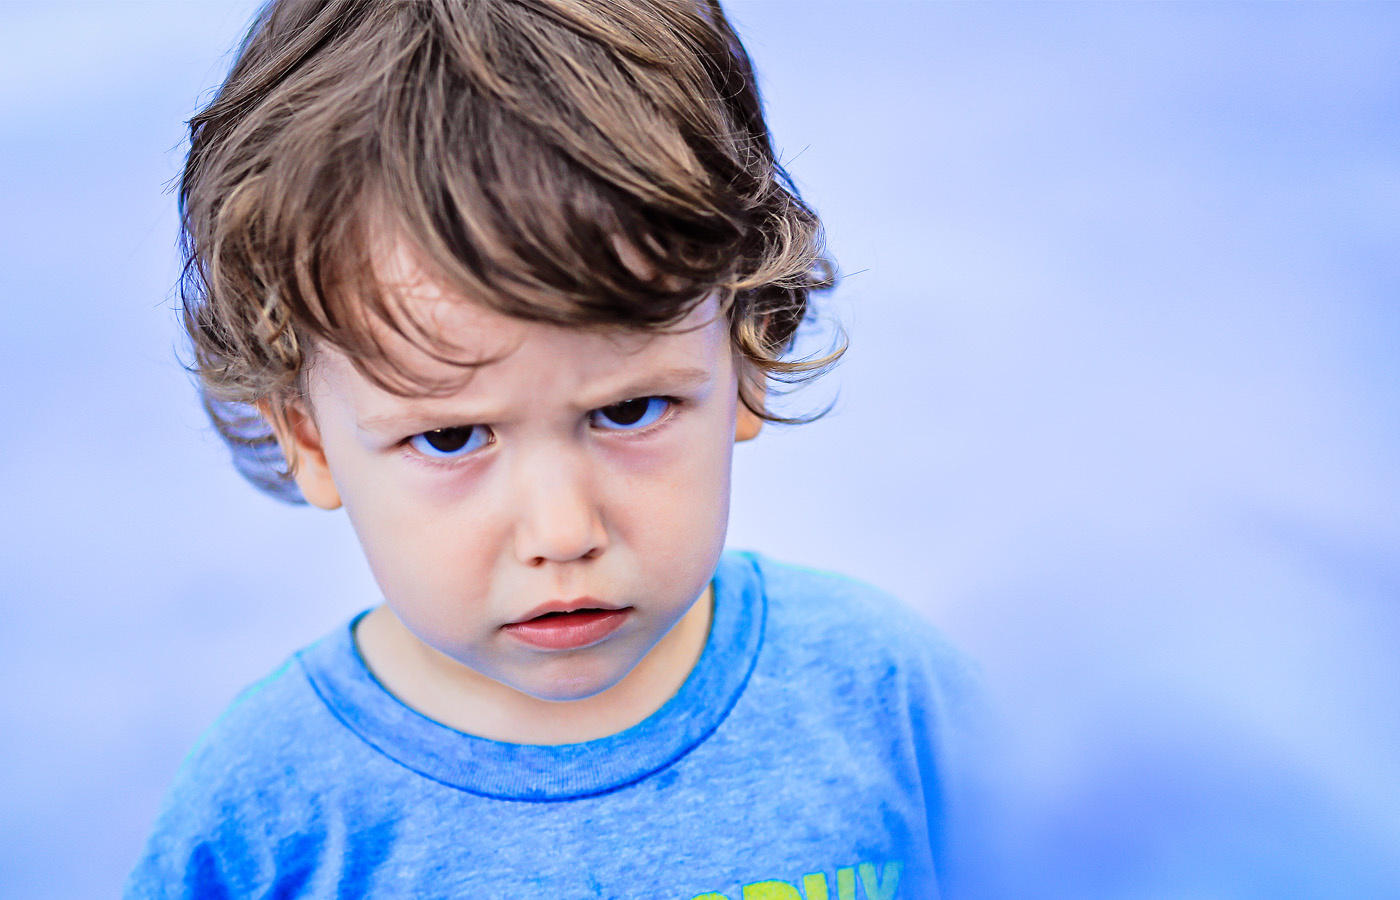 7 Ways to Parent Bossy Kids